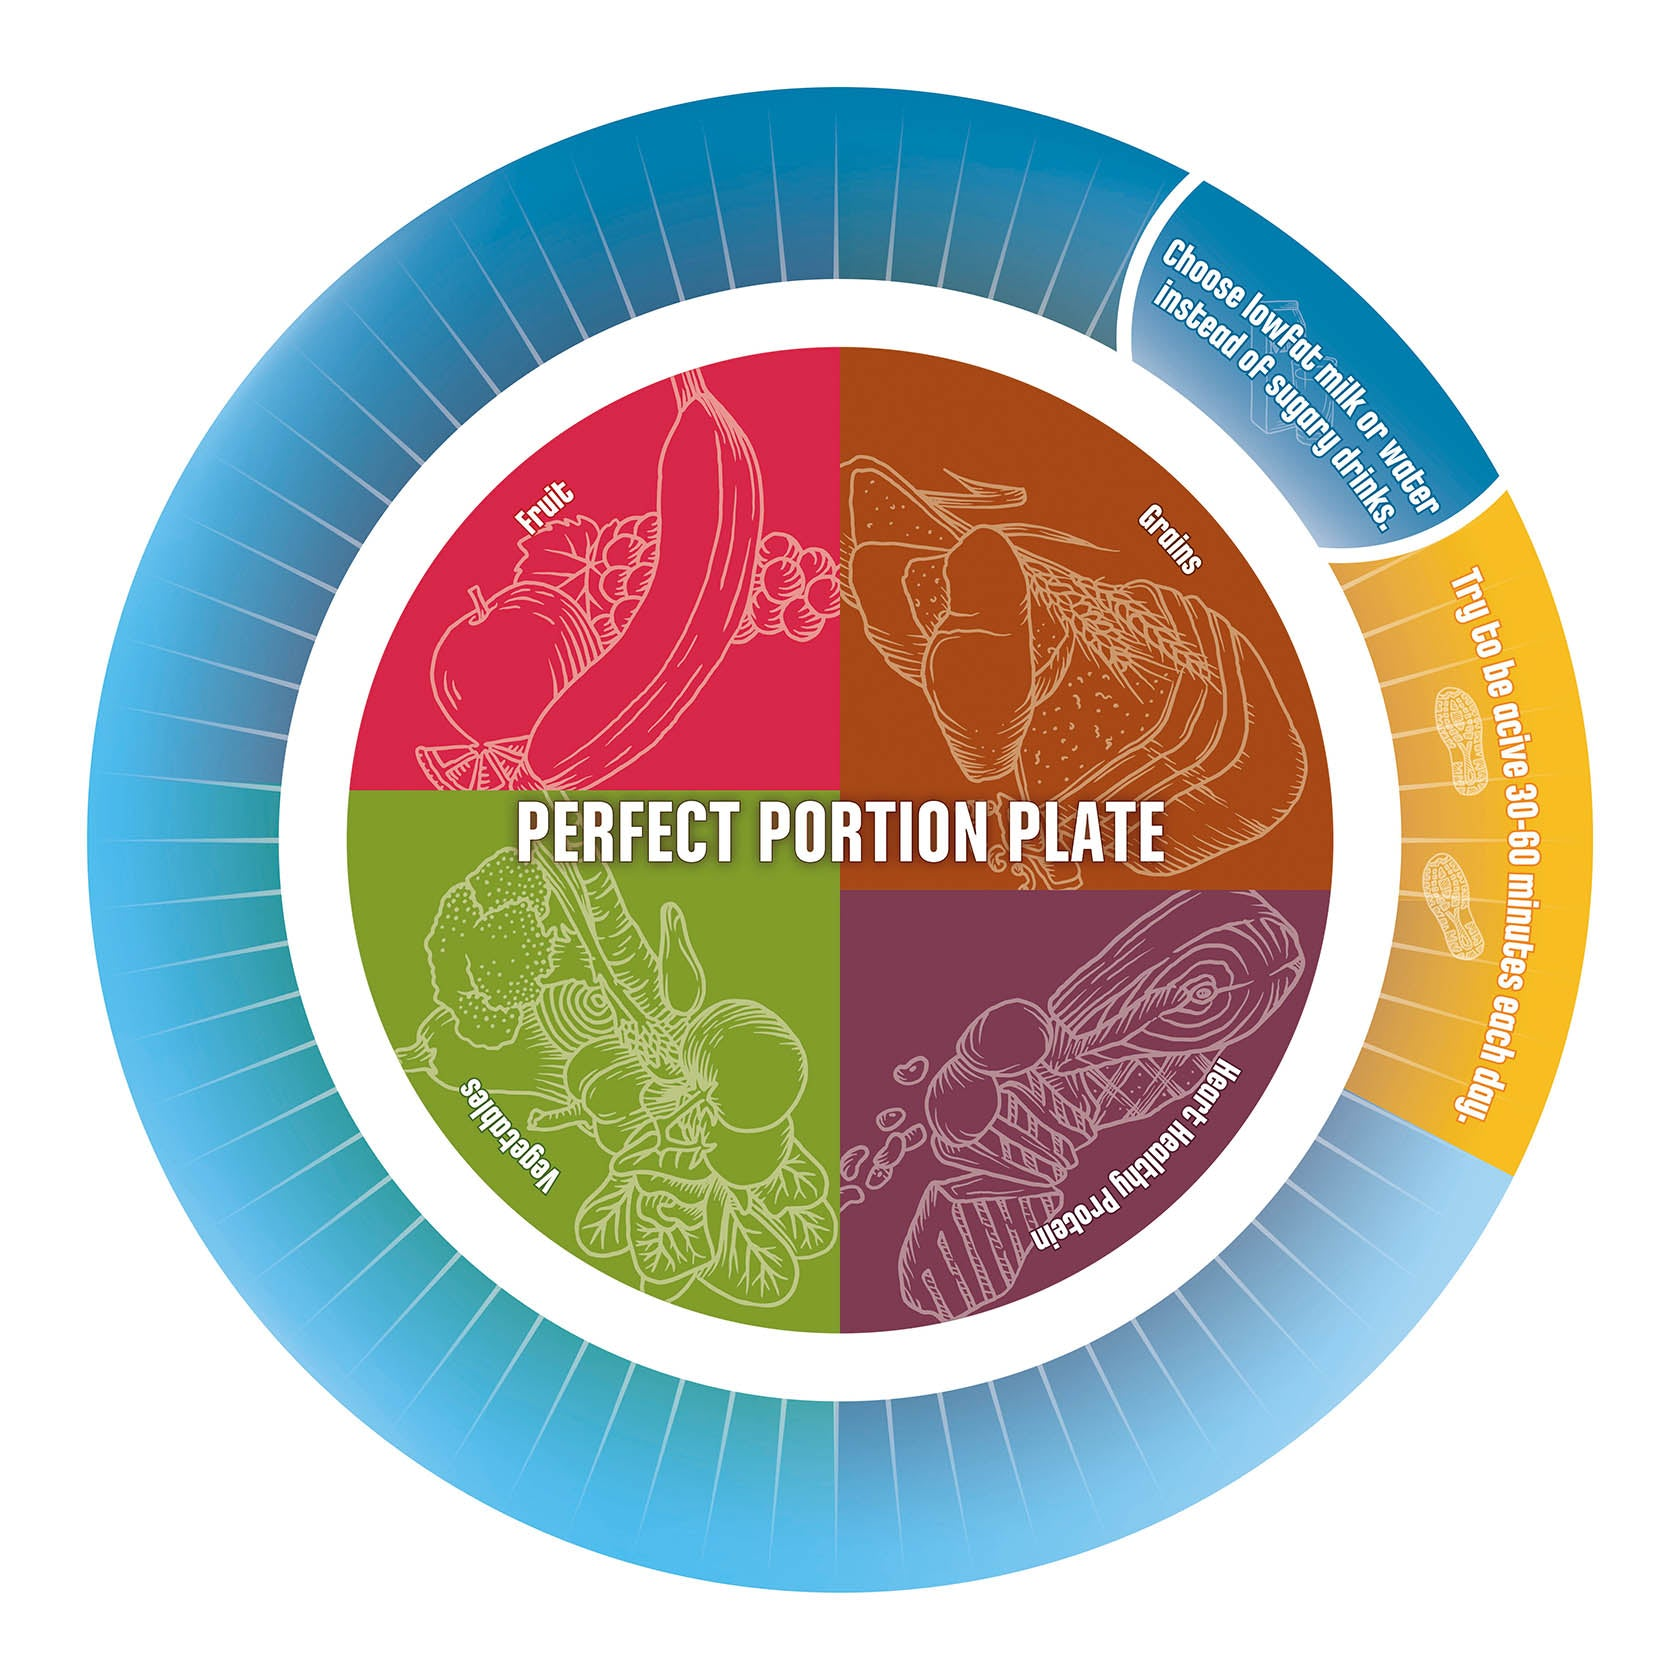 Portion Plate - Portion Control Plate for Diet and Exercise Success - Nutrition Education Store